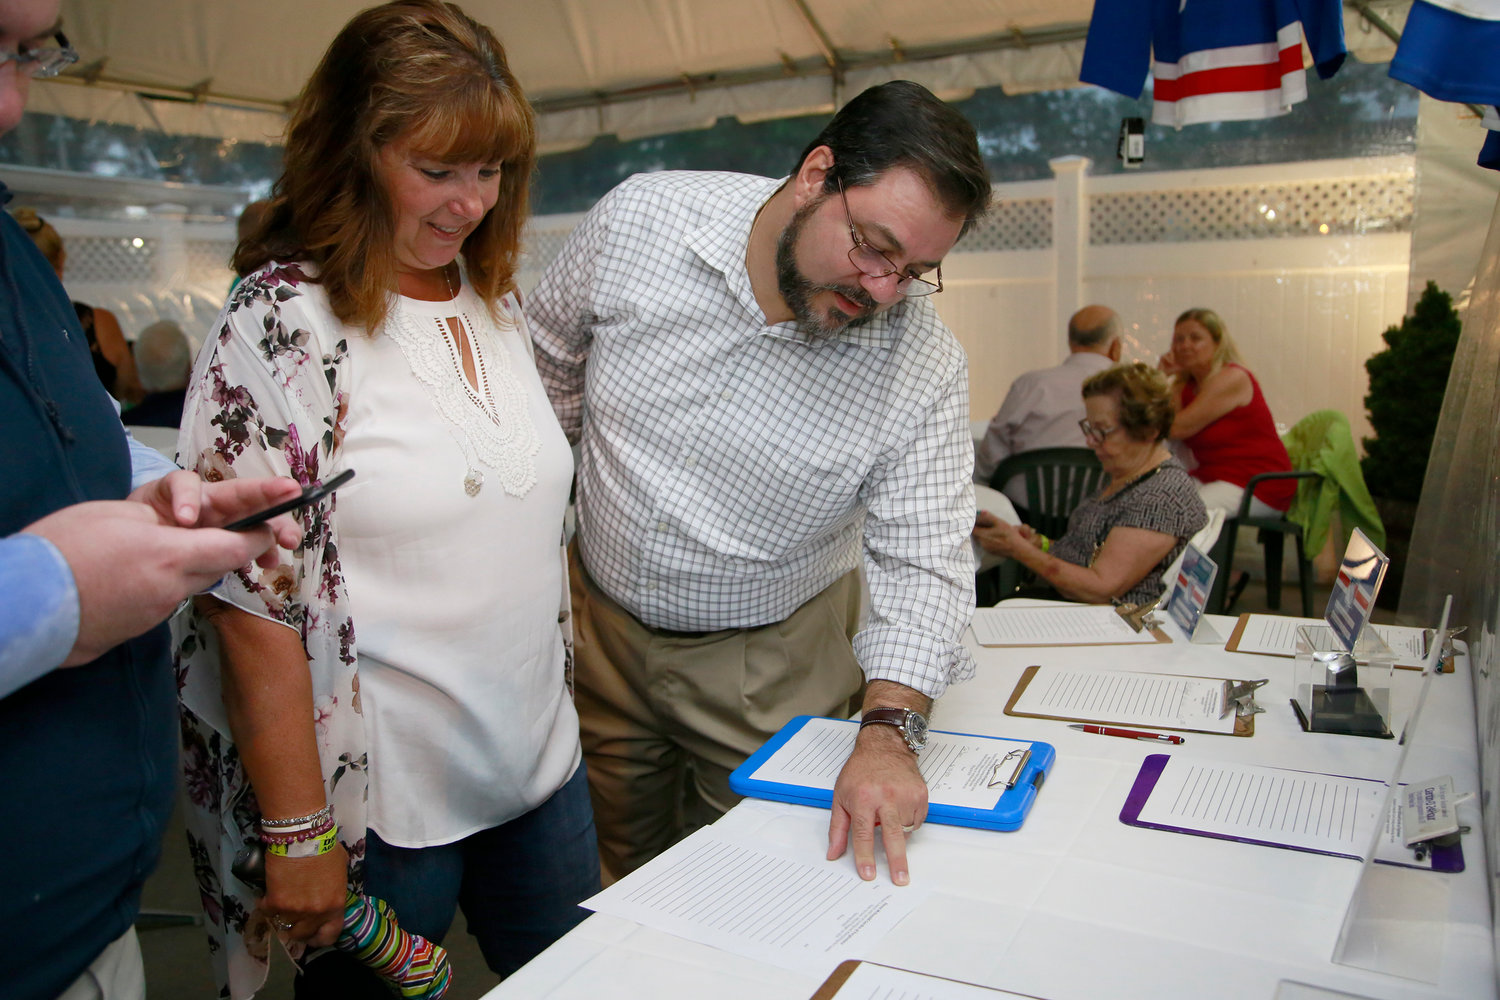 Village Trustee Perry Cuocci and his wife, Ann Marie, browsed through the silent auction items.